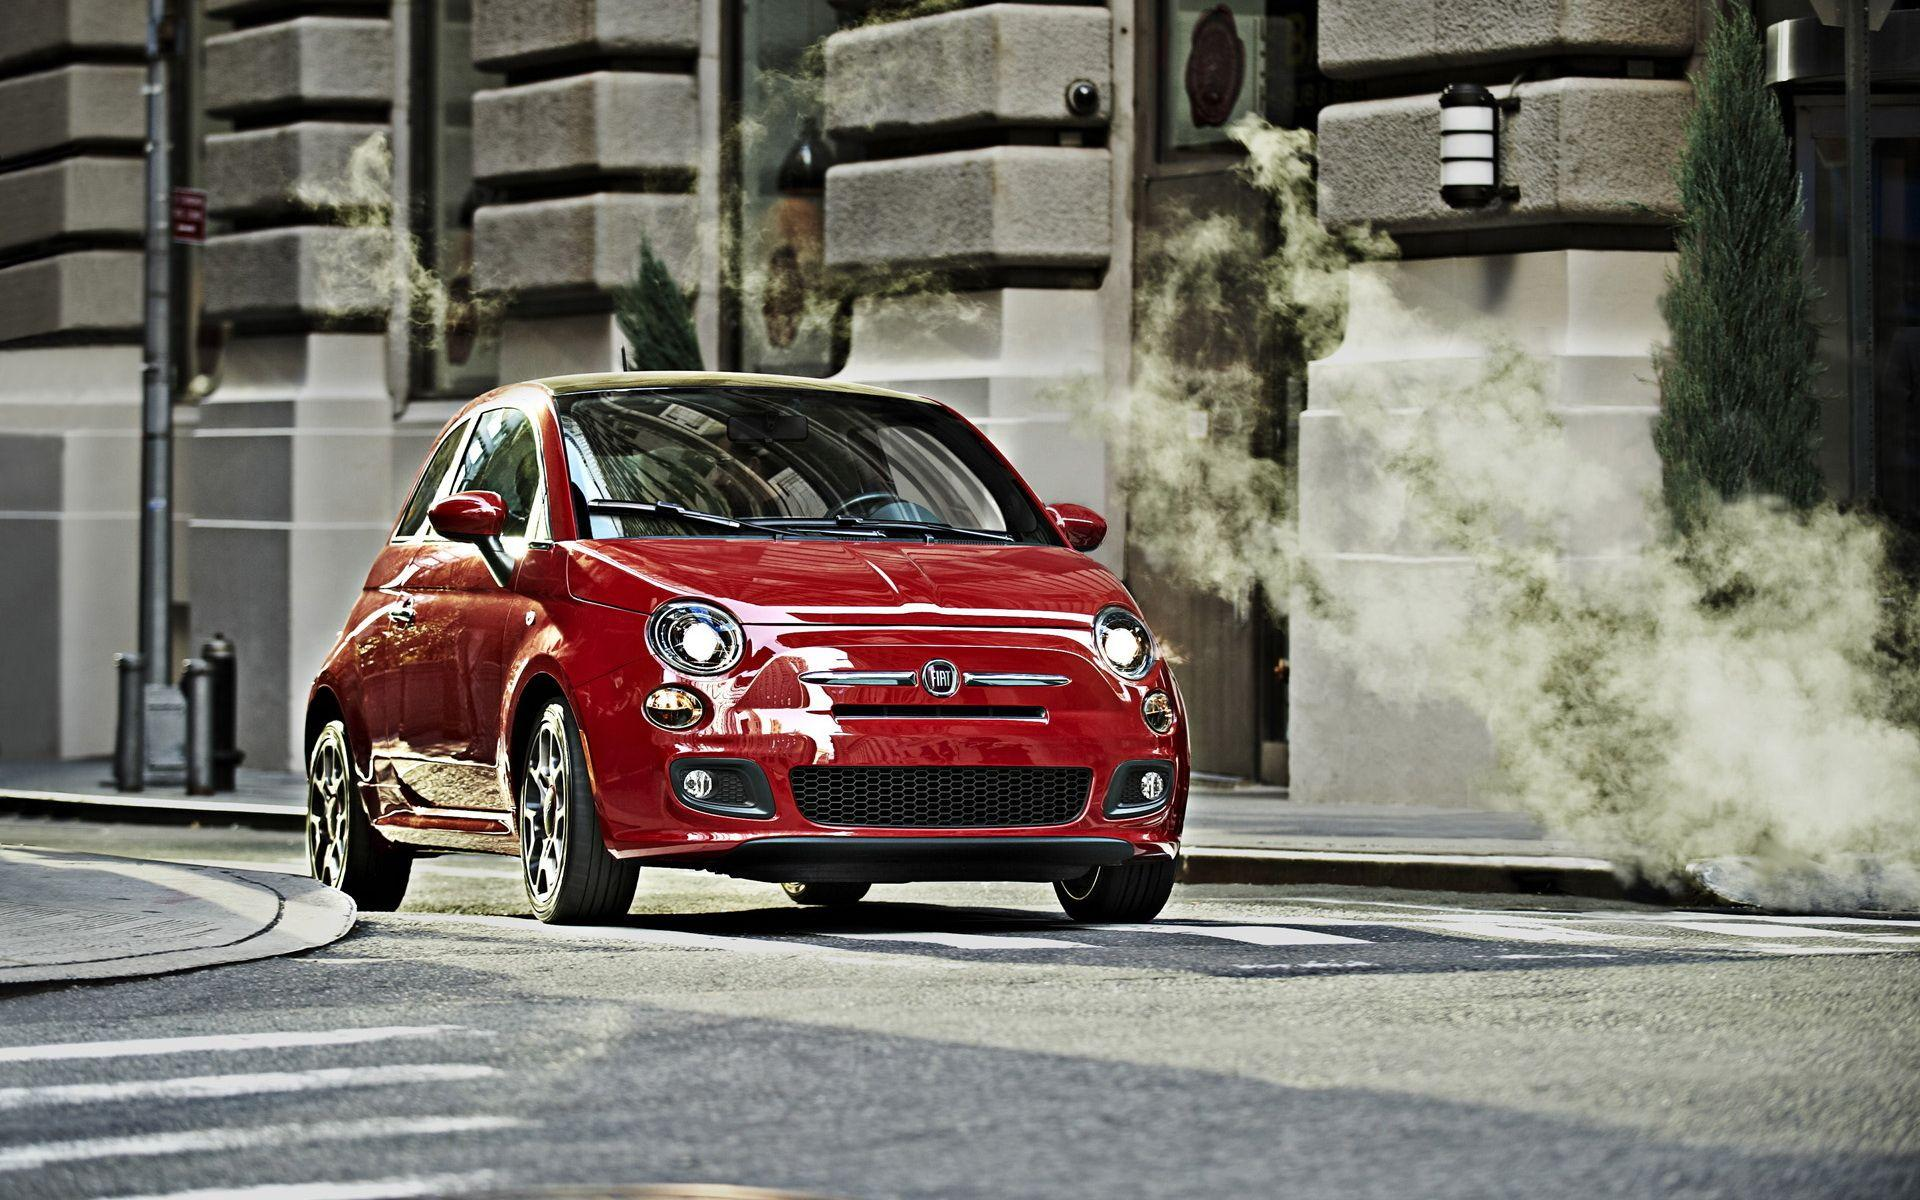 Fiat-500 red wallpapers and images - wallpapers, pictures, photos